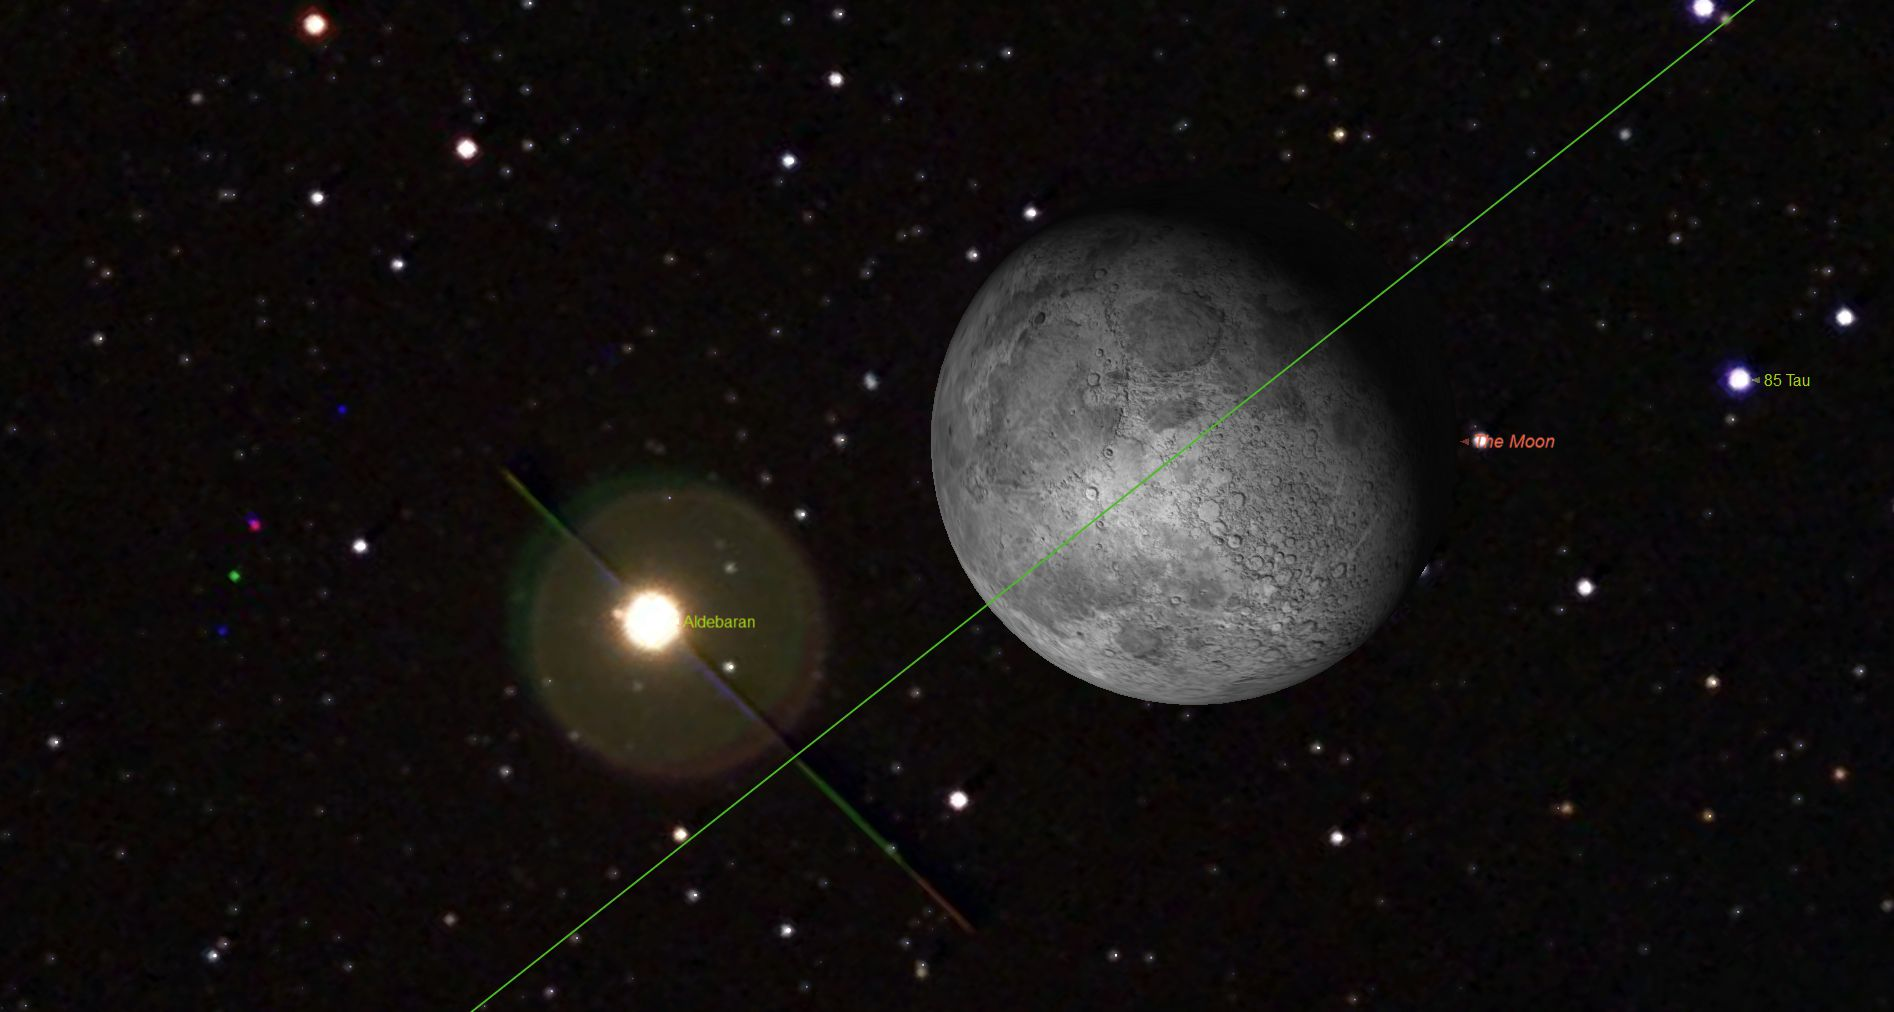 Nov. 5 - Occultation of Aldebaran